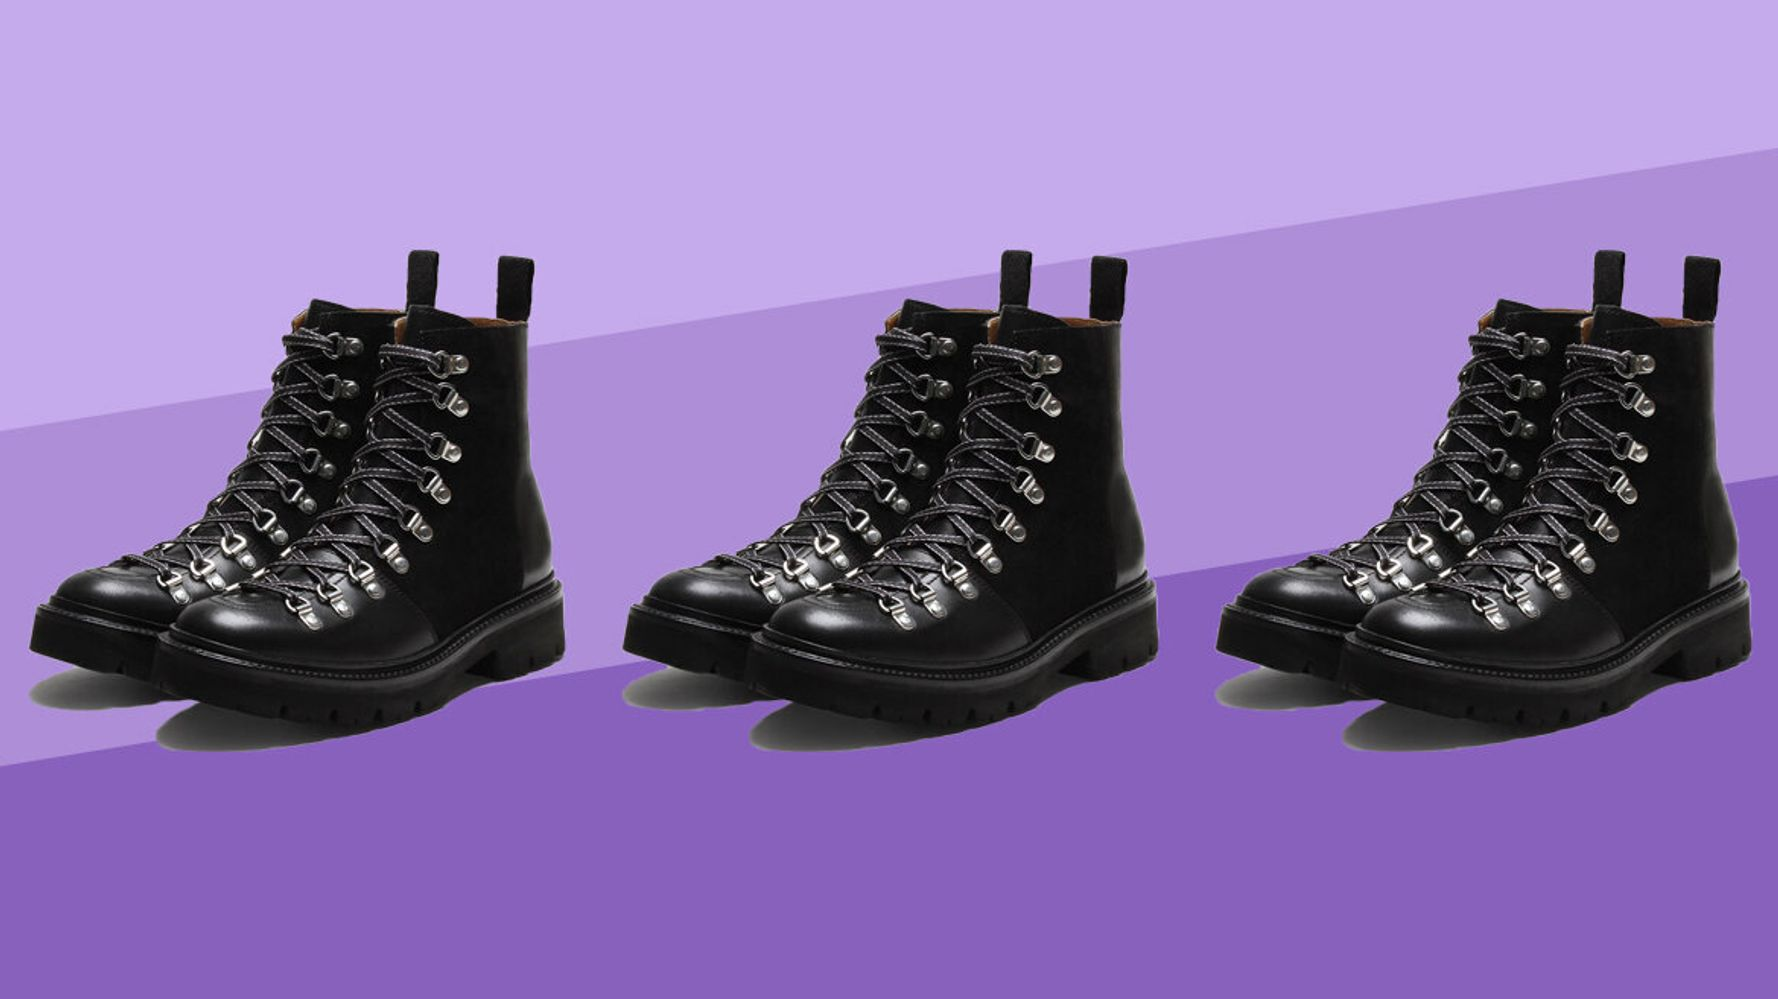 12 Of The Best Boots To Buy This Autumn